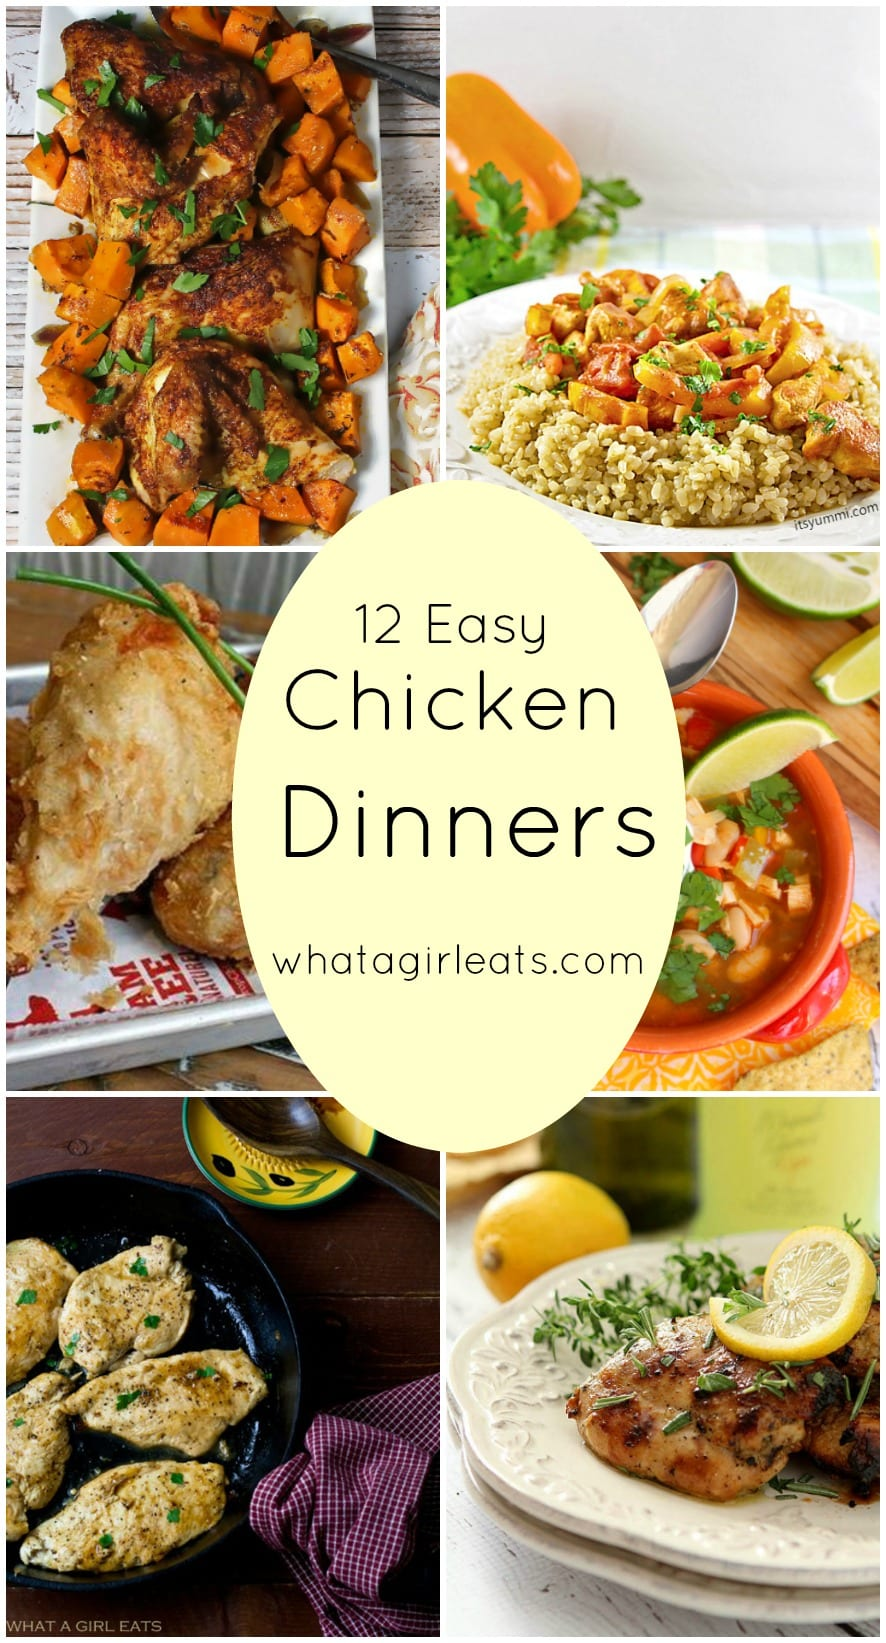 12 Easy Chicken Dinners for busy weeknights. National Chicken Month.